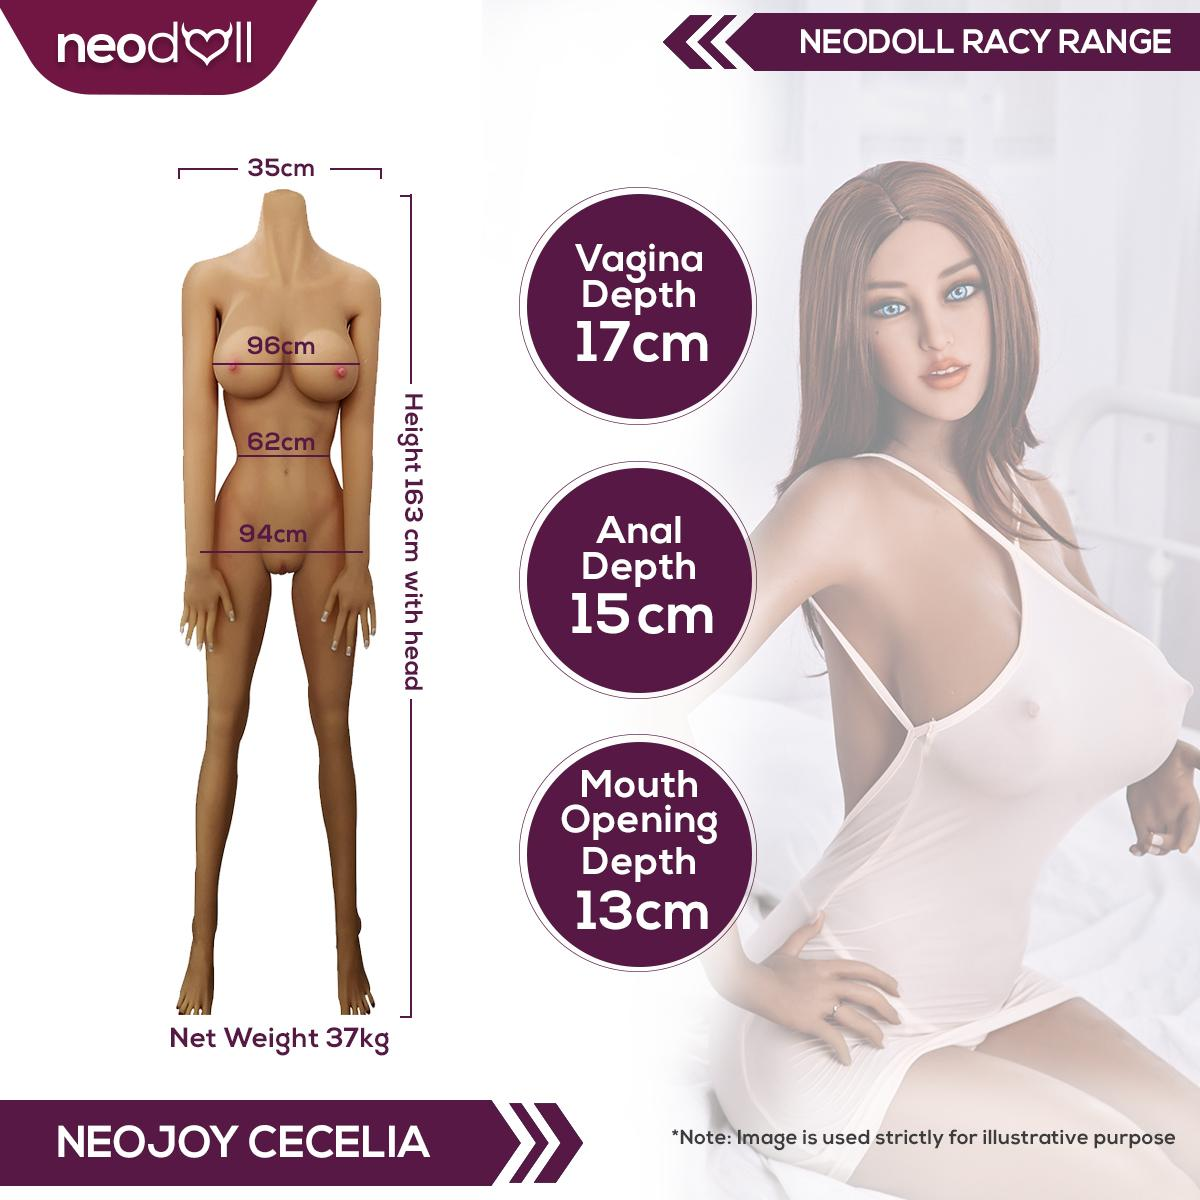 Neodoll Racy Cecelia - Realistic Sex Doll - 163cm Plus - Tan